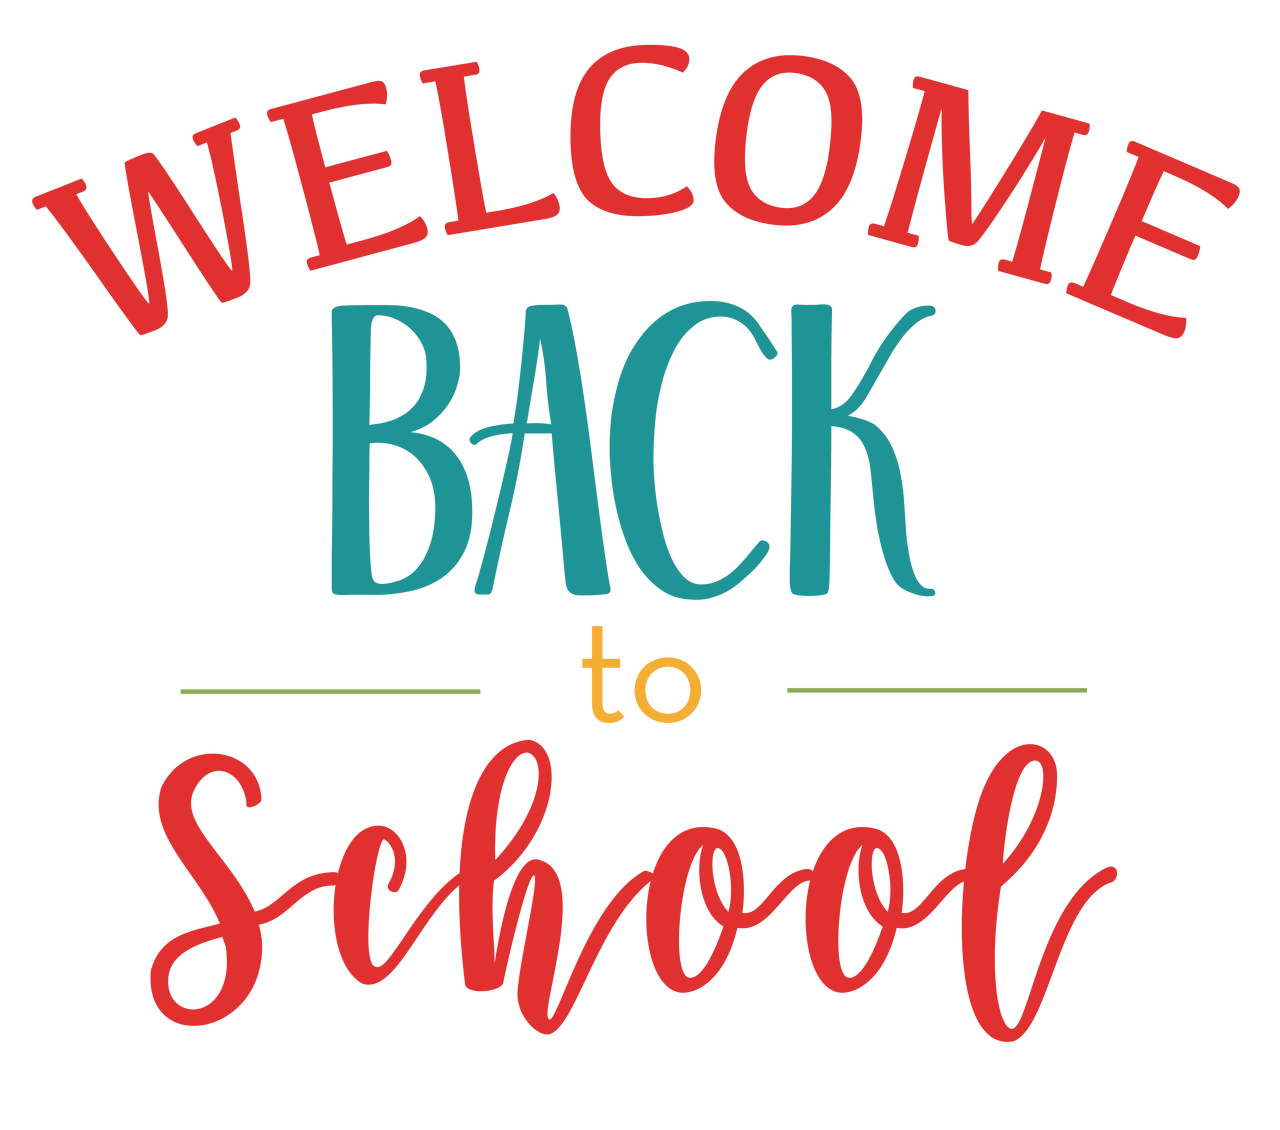 Welcome Back To School SVG Cut File - Snap Click Supply Co.